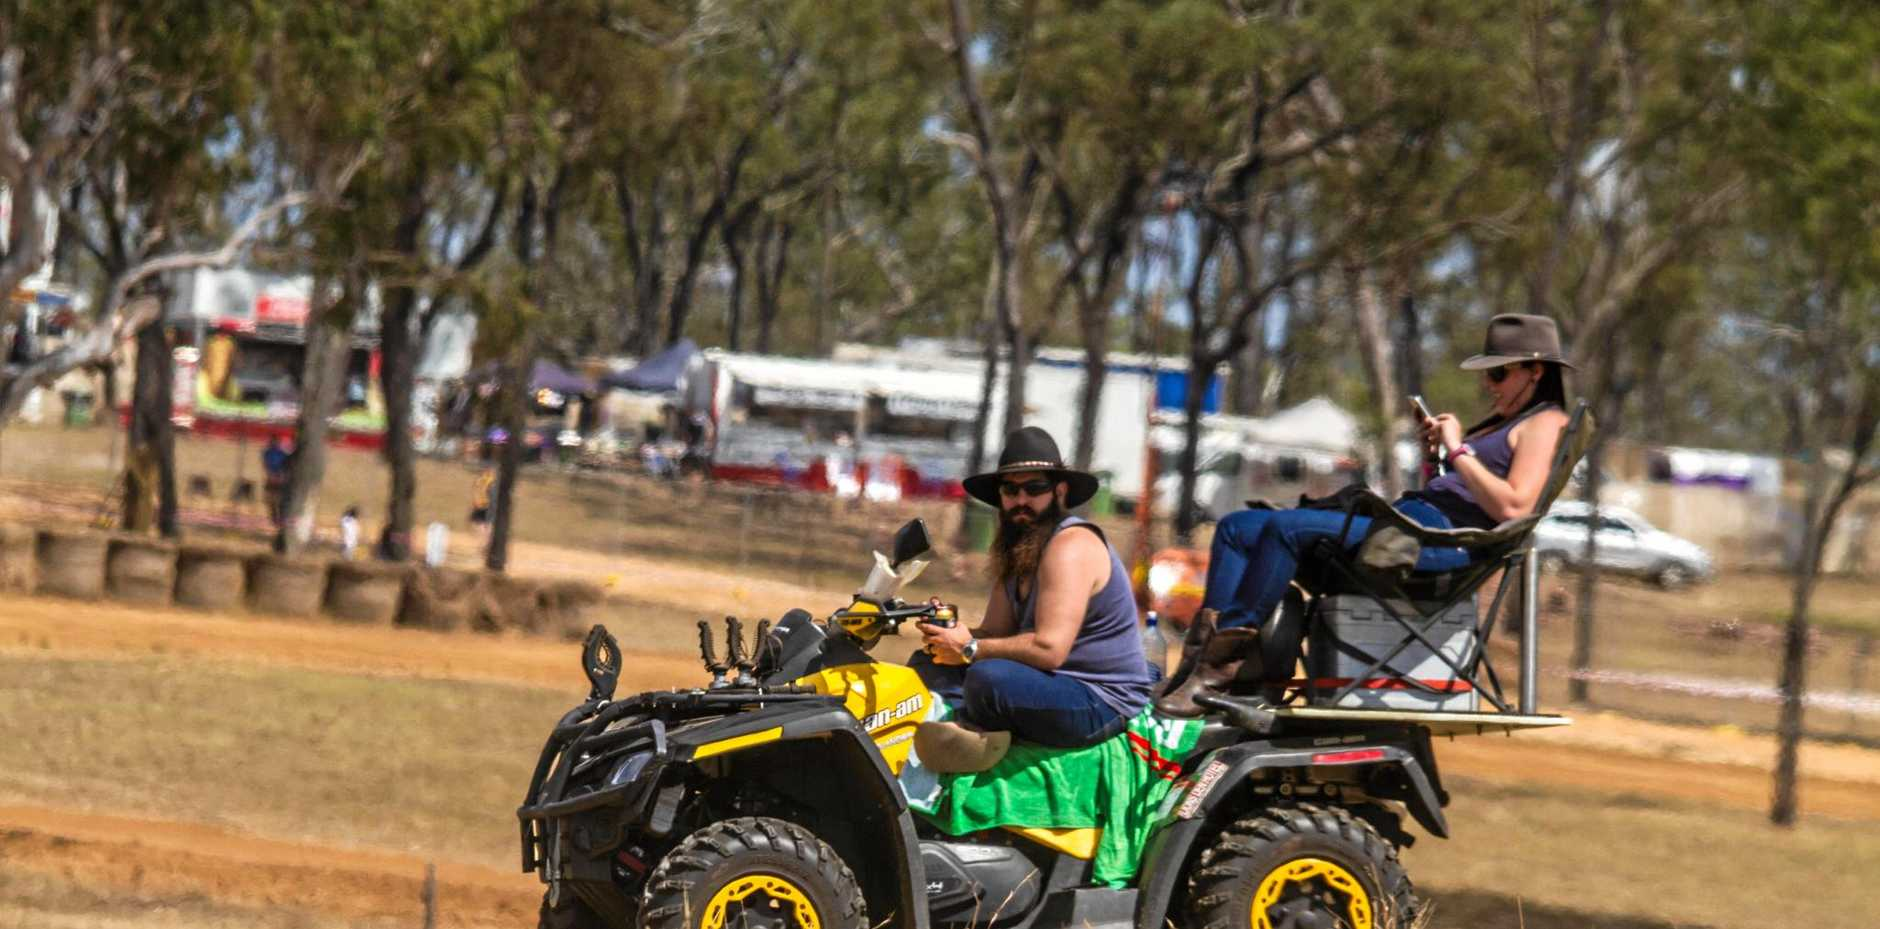 Beer... check. Esky... check. Four wheeler... check. Sunnies... check. Is this the most Aussie photo you have ever seen?